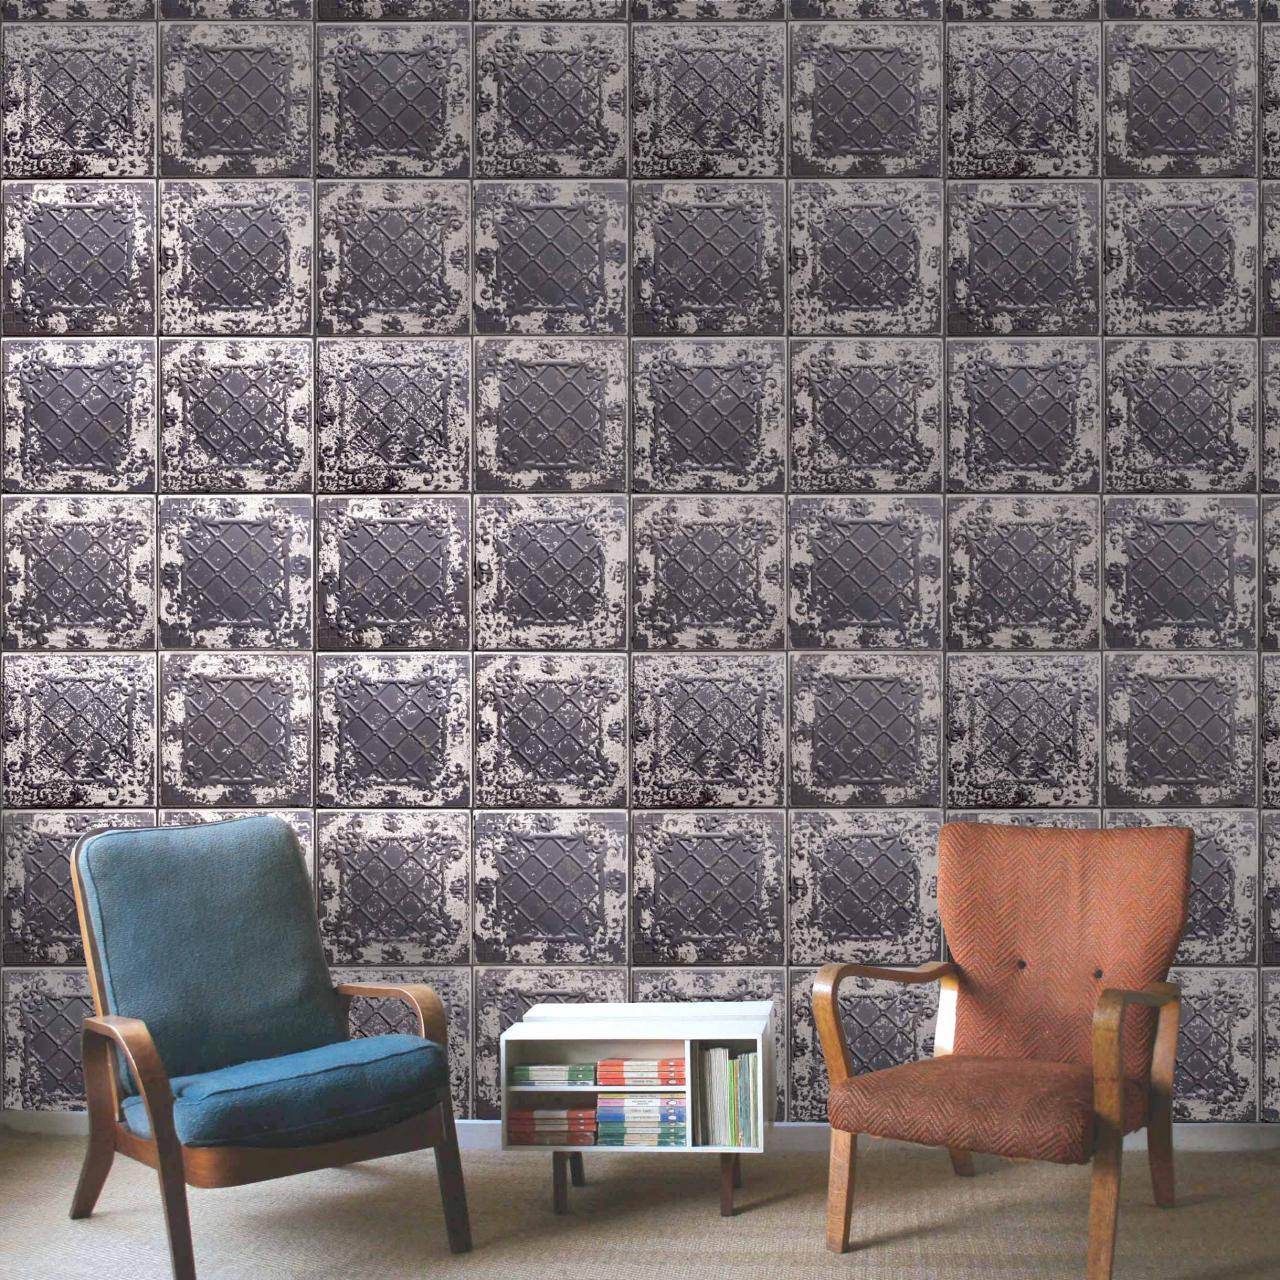 Elizabeth St Tin Tile Effect Wallpaper | Charcoal Black & Cream tones